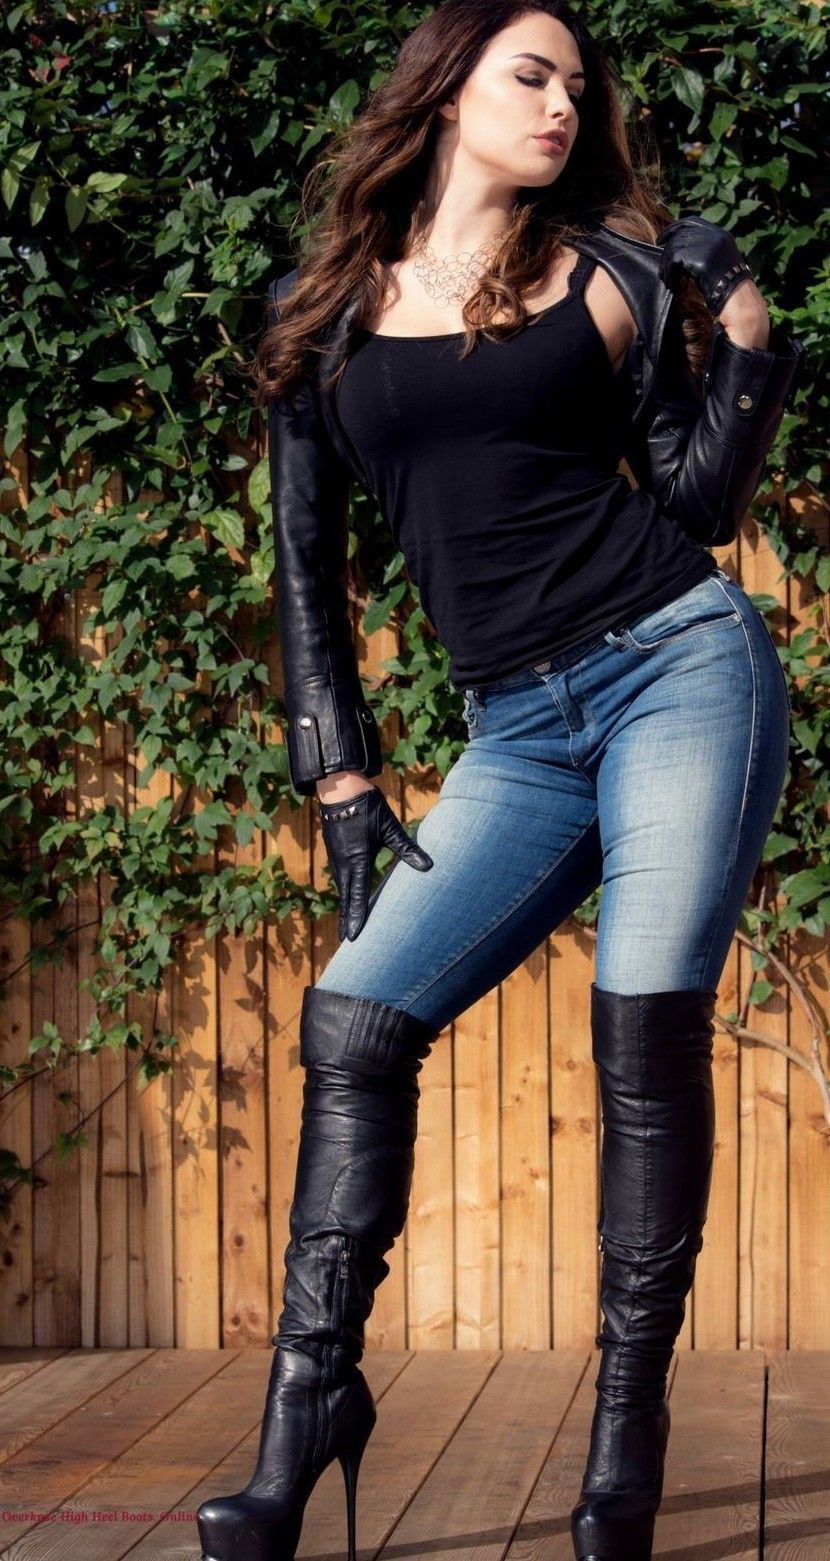 Black leather bolero jacket gloves jeans OTK boots